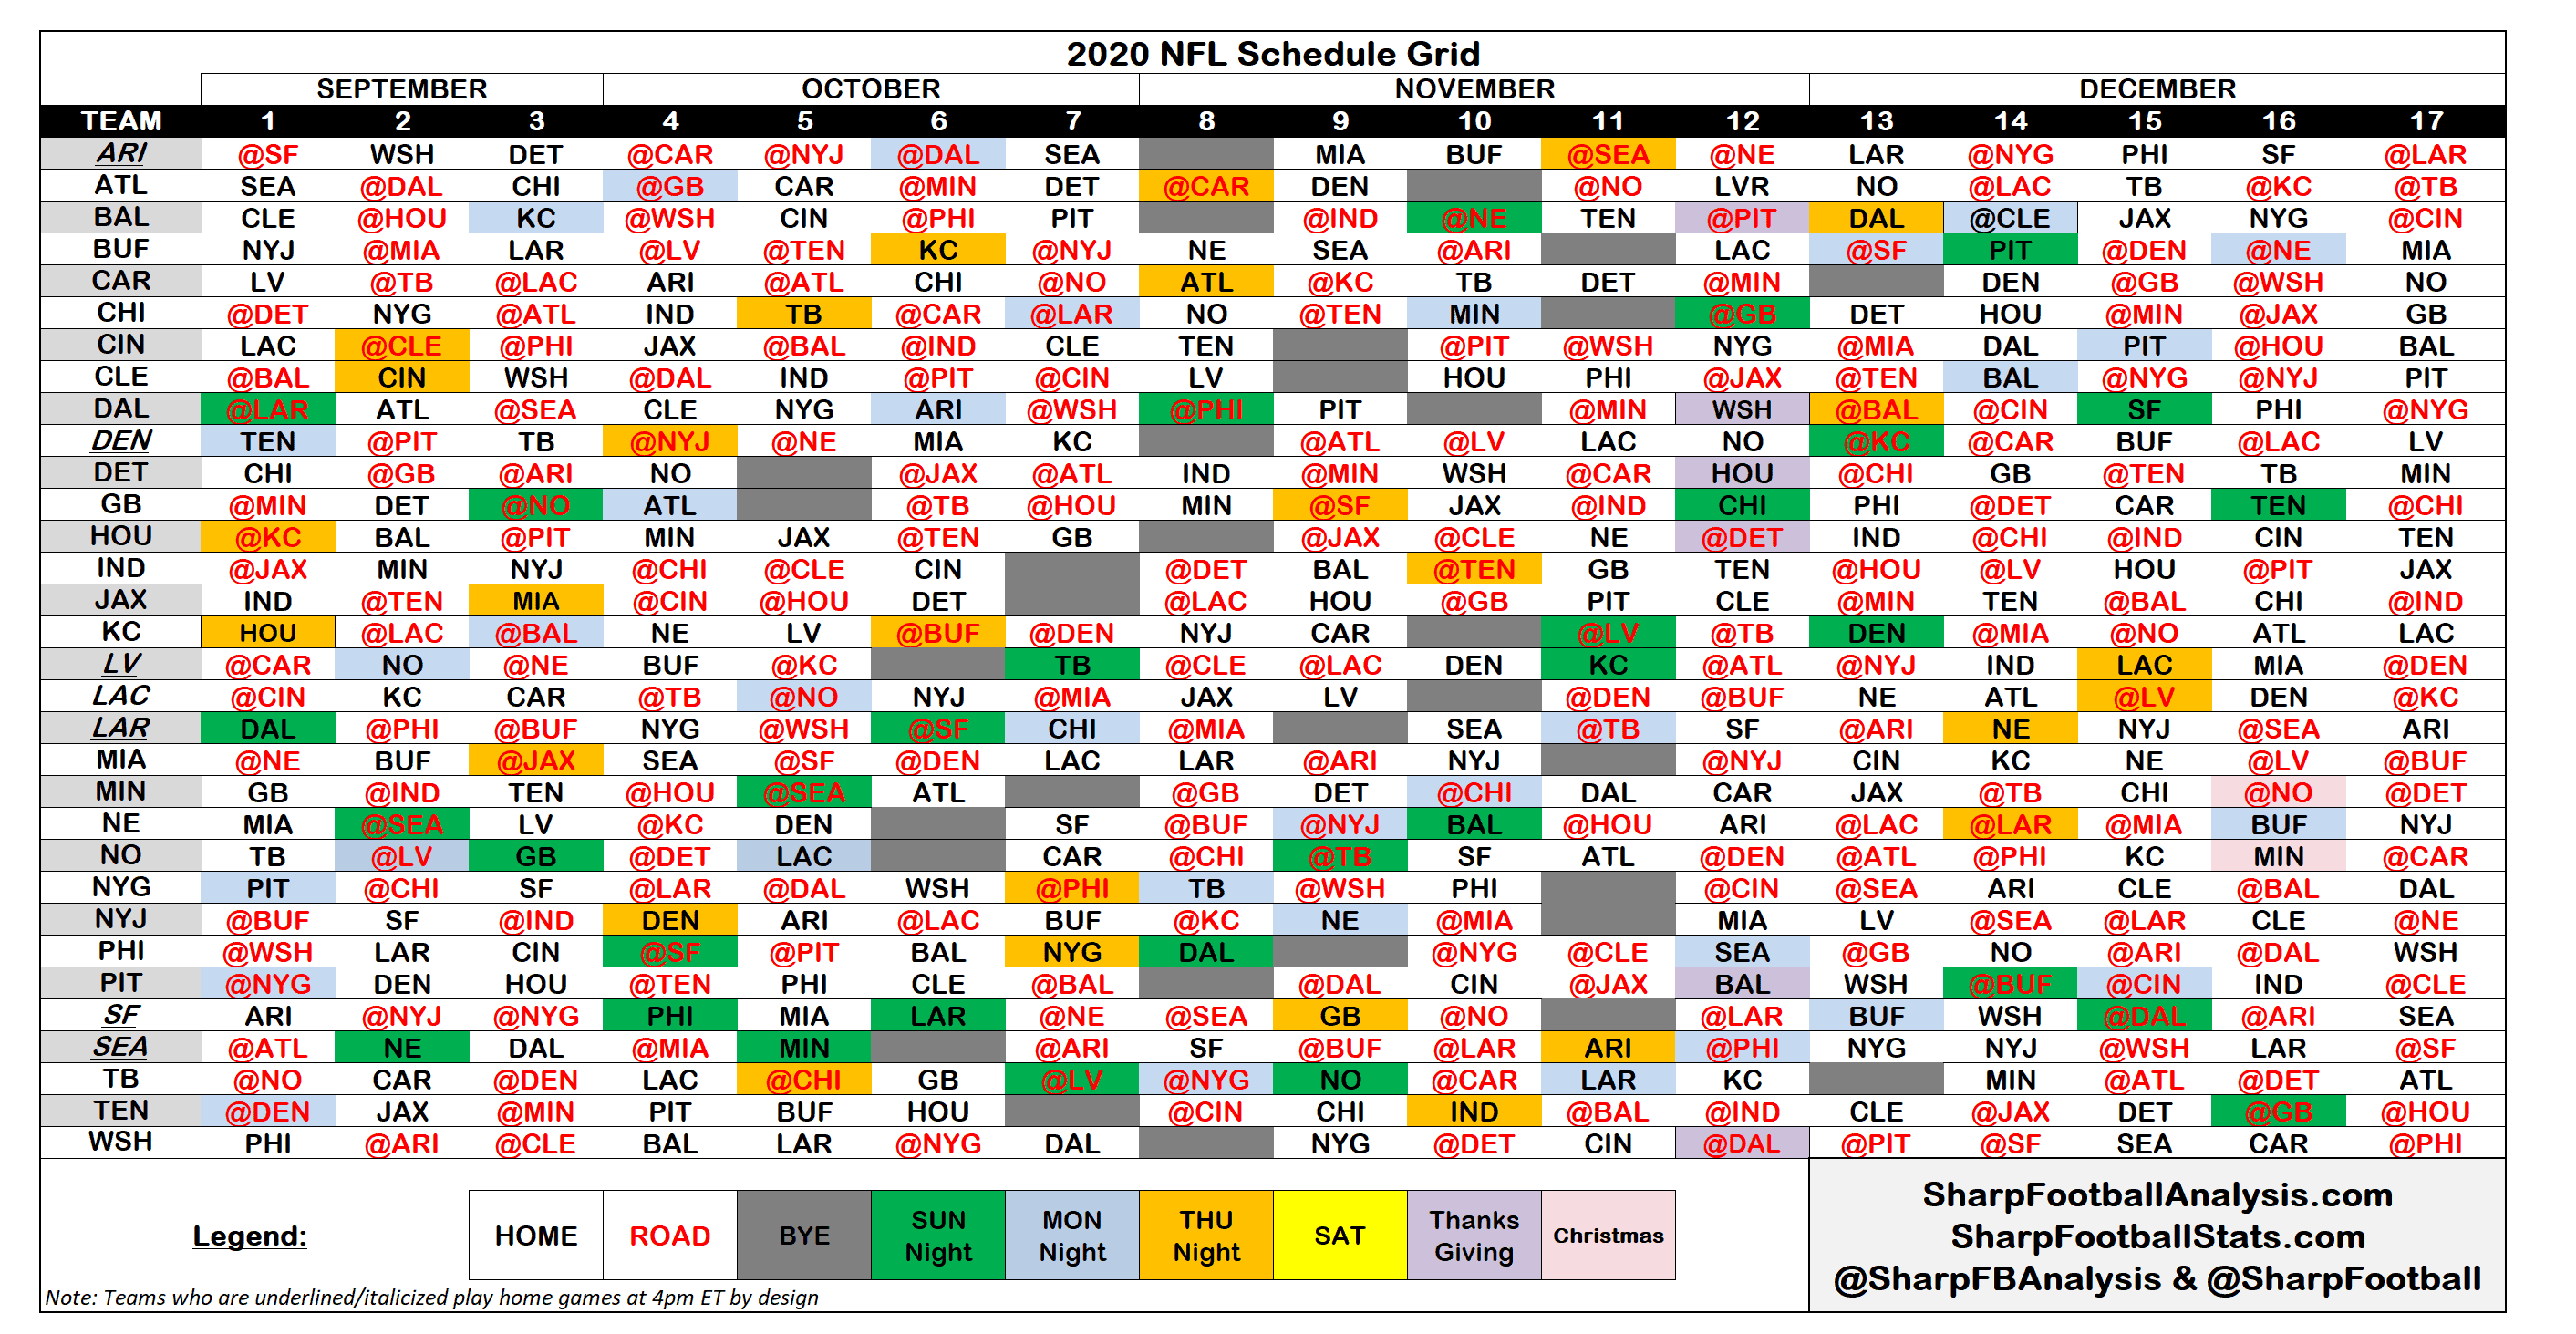 Nfl Schedule 2020 Christmas 2020 NFL Regular Season Schedule Grid & Strength Of Schedule